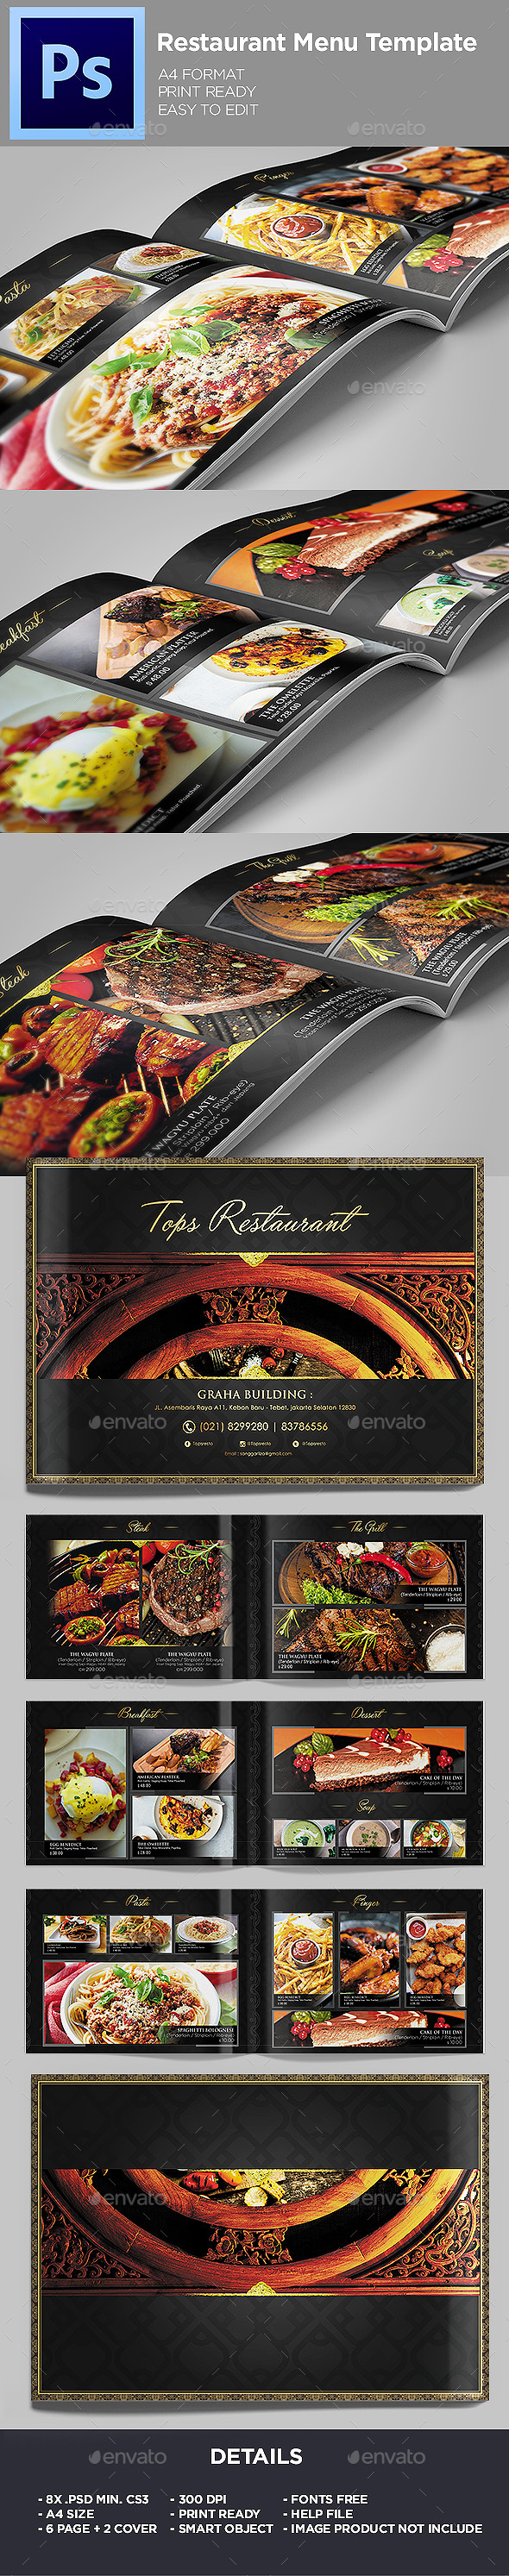 restaurant menu food menu template food menus print templates